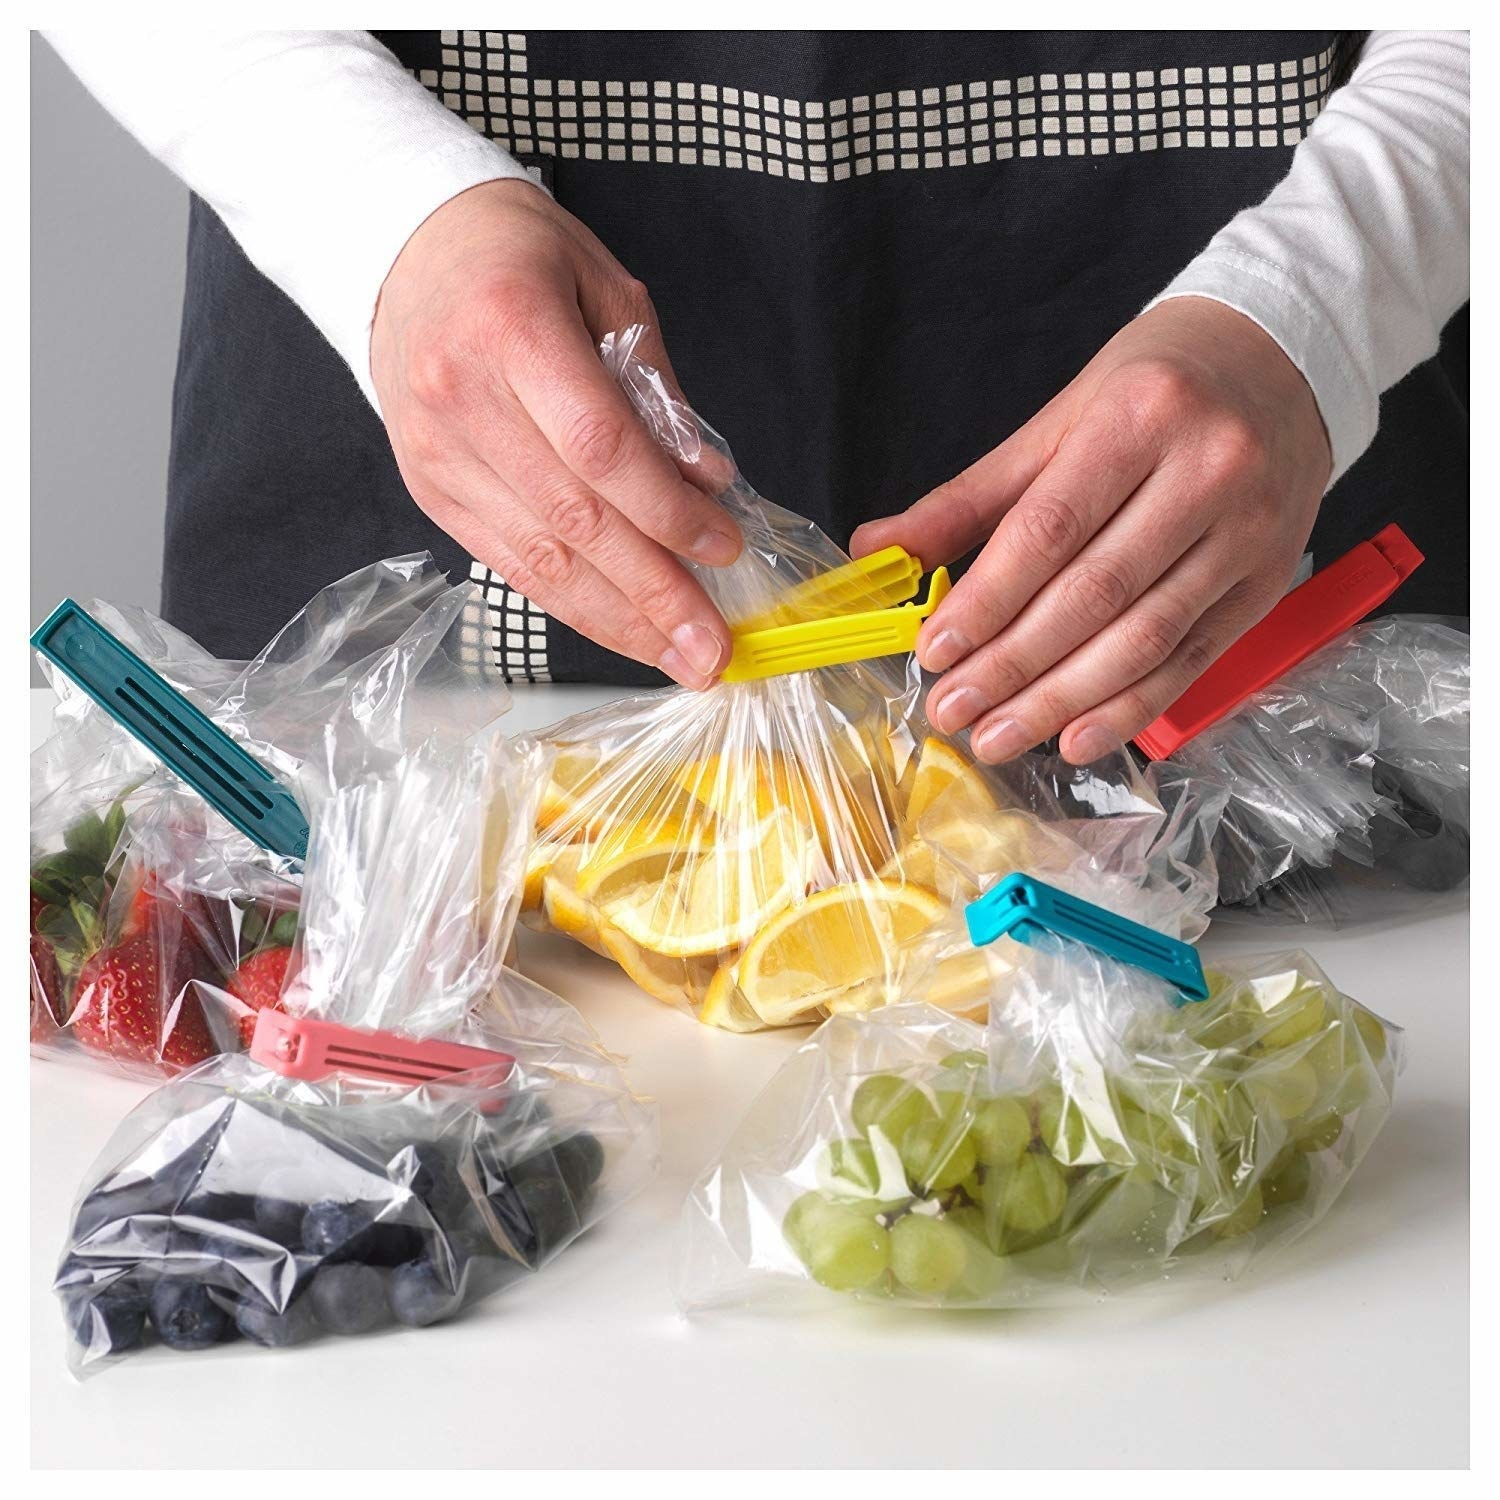 A person using baggie seals to pack plastic bags of food.